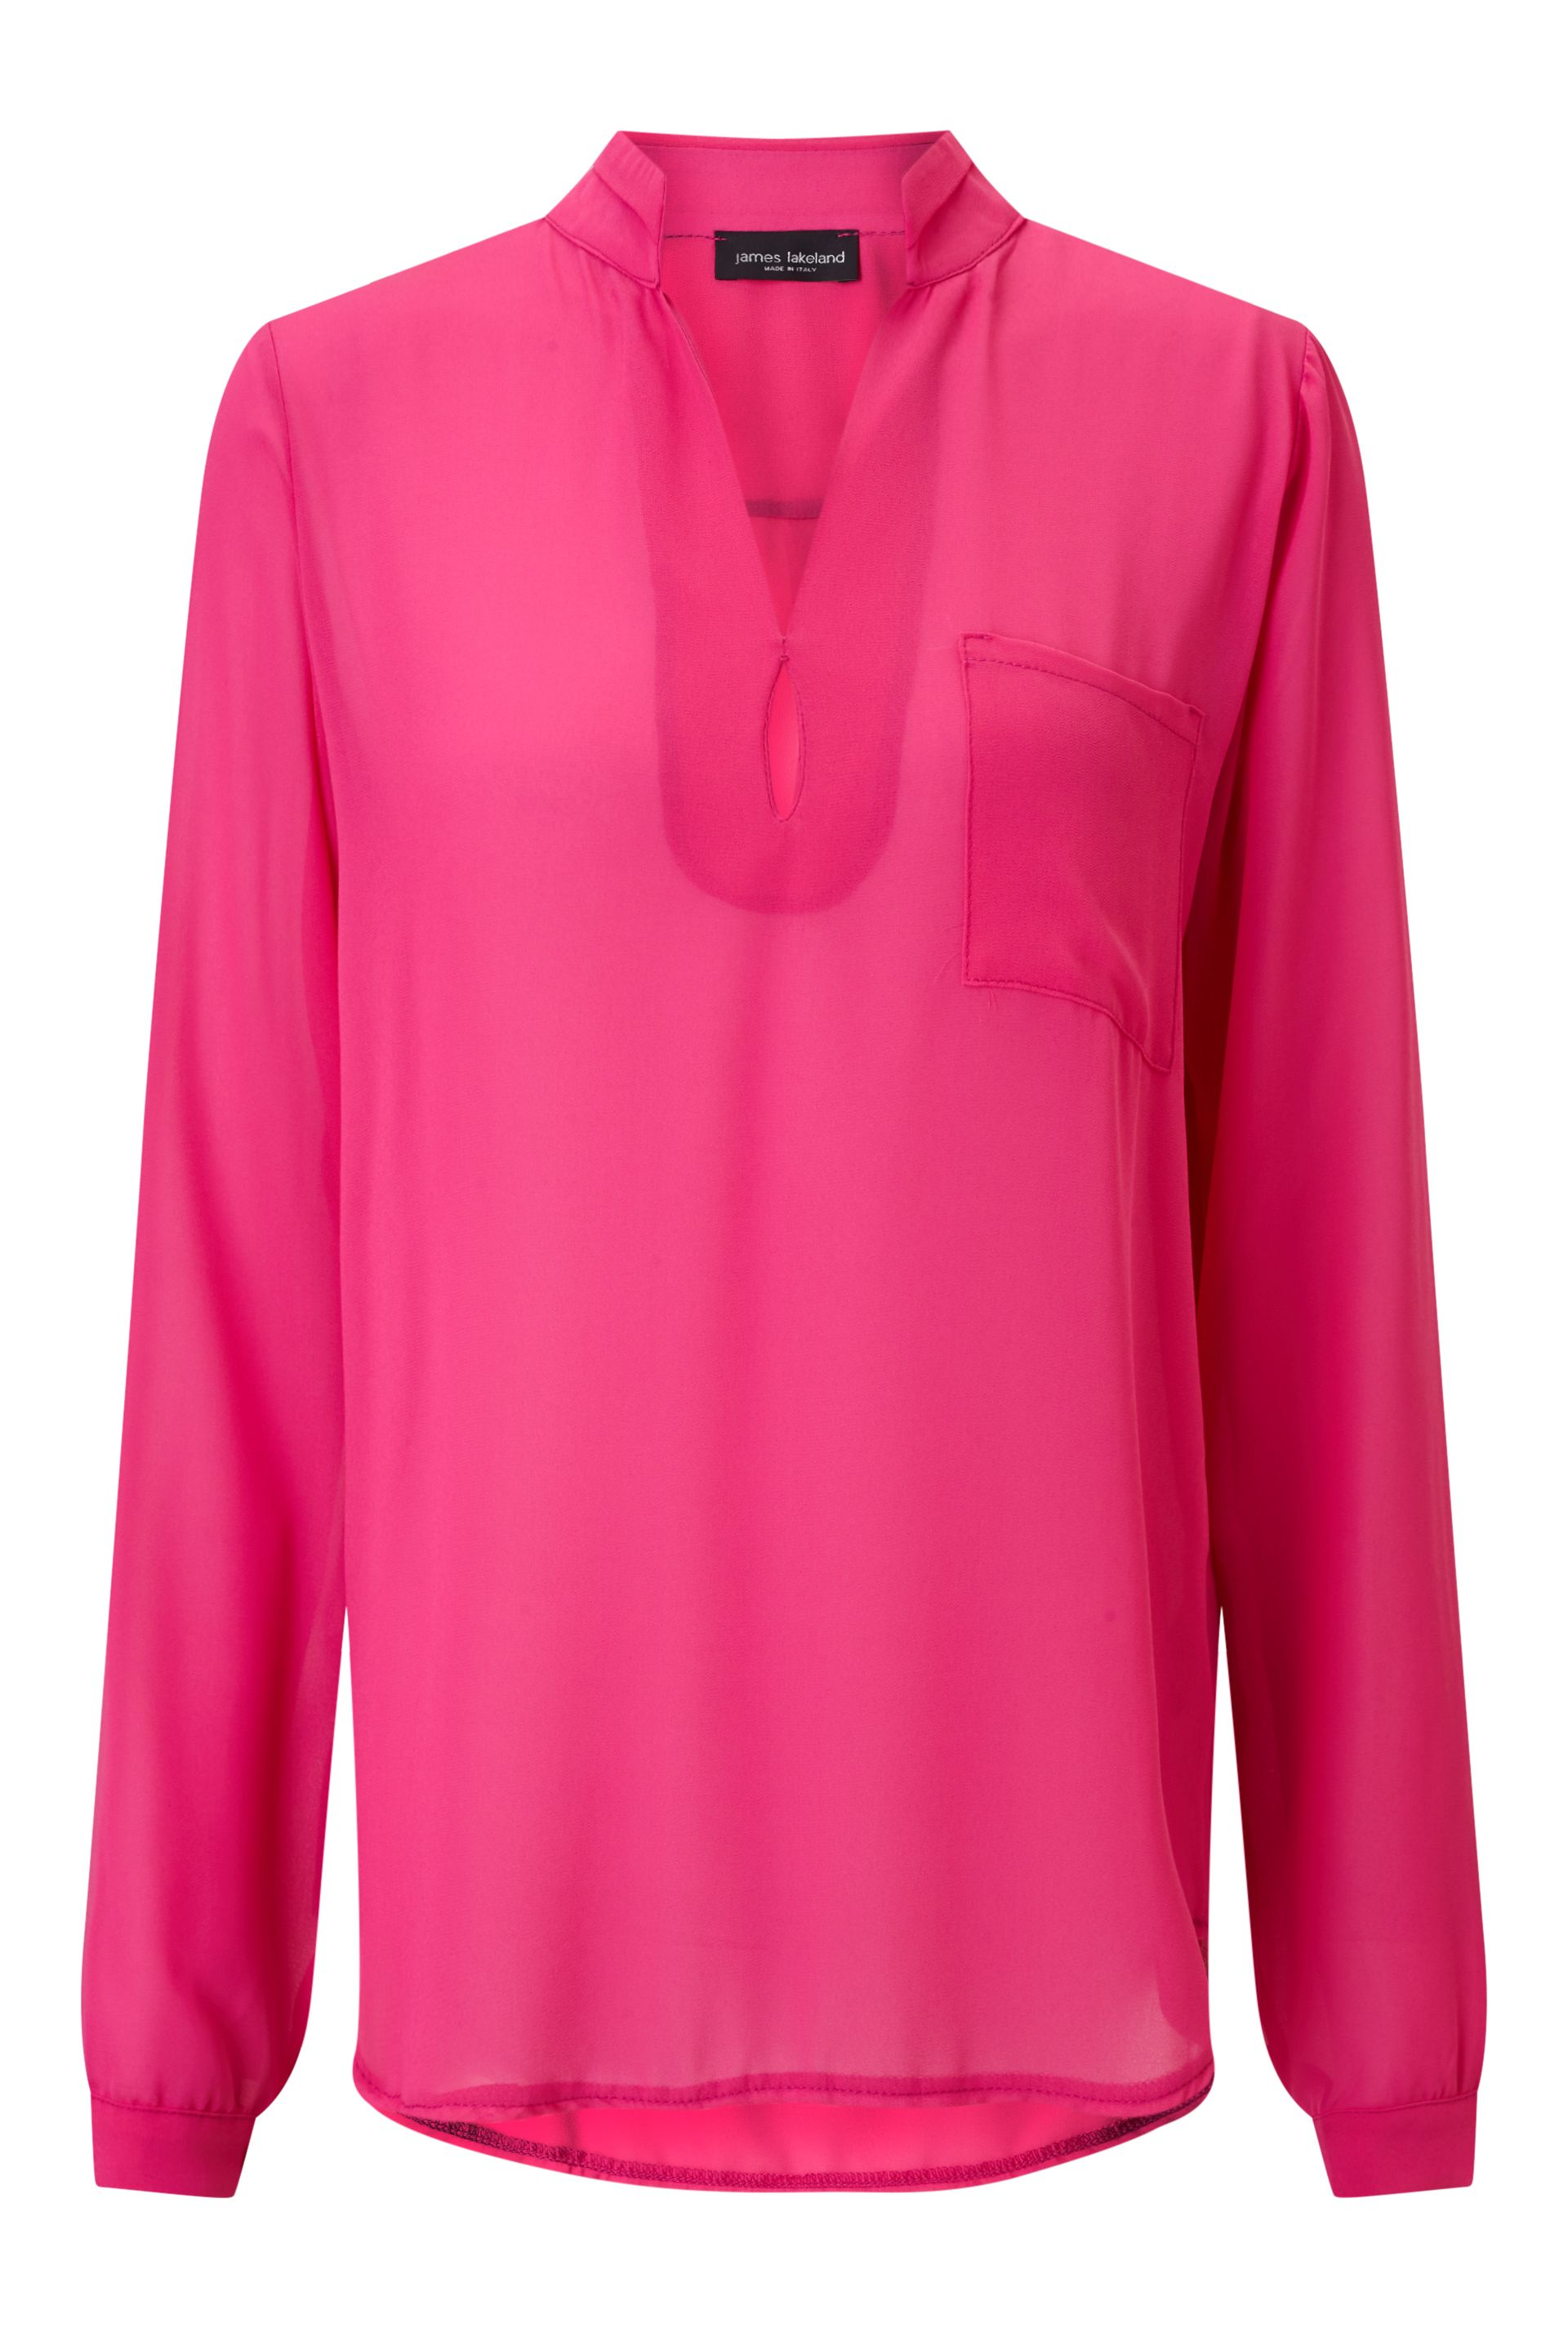 James Lakeland Long Sleeve Pockets Blouse, Pink